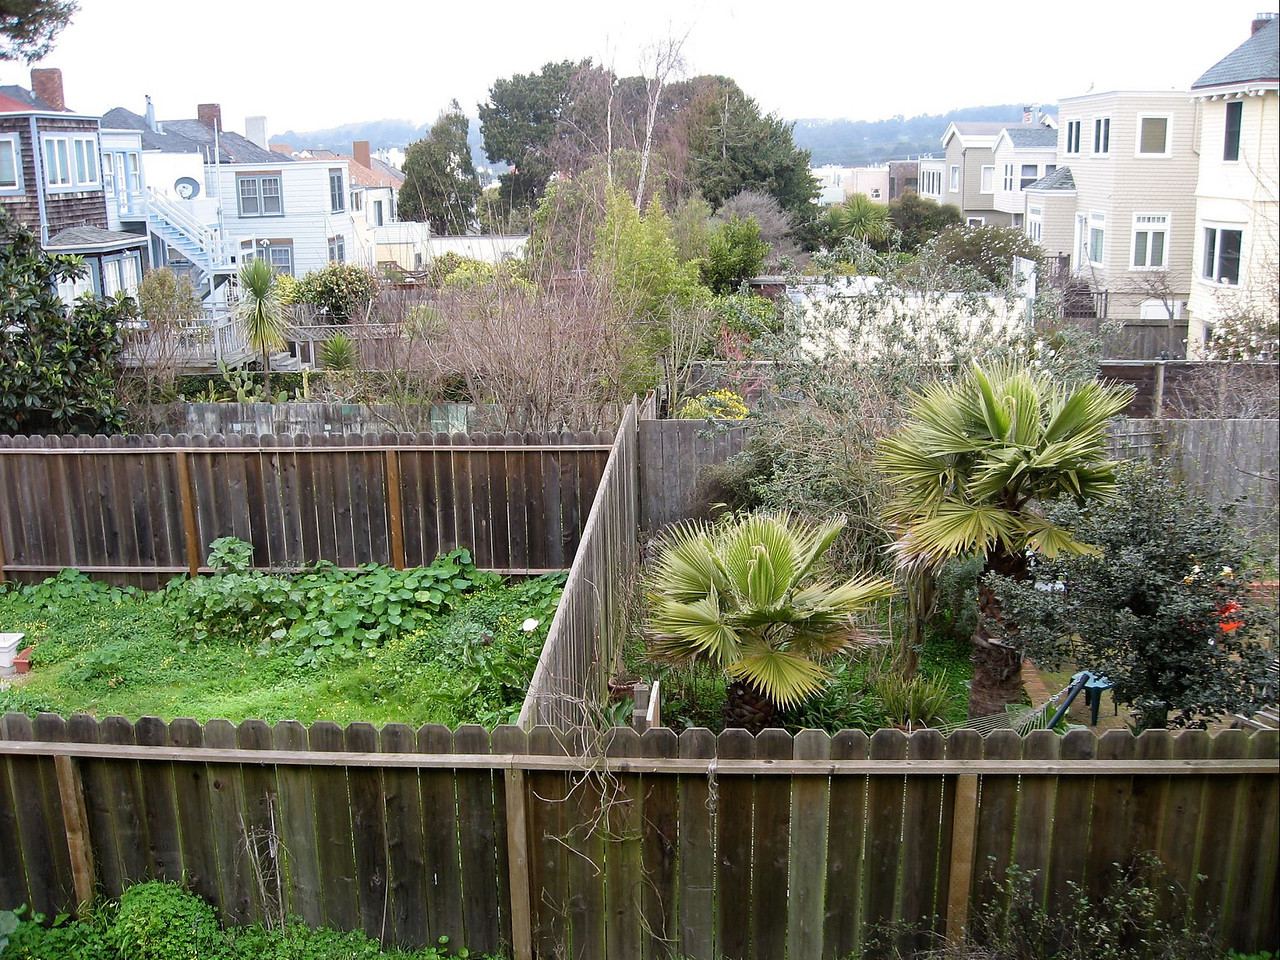 Here's the view from one of the rear bedrooms on the top floor.  You can see everyone's garden and since we are on the top of the hill, it looks down onto everyone else.  It's a gorgeous view.